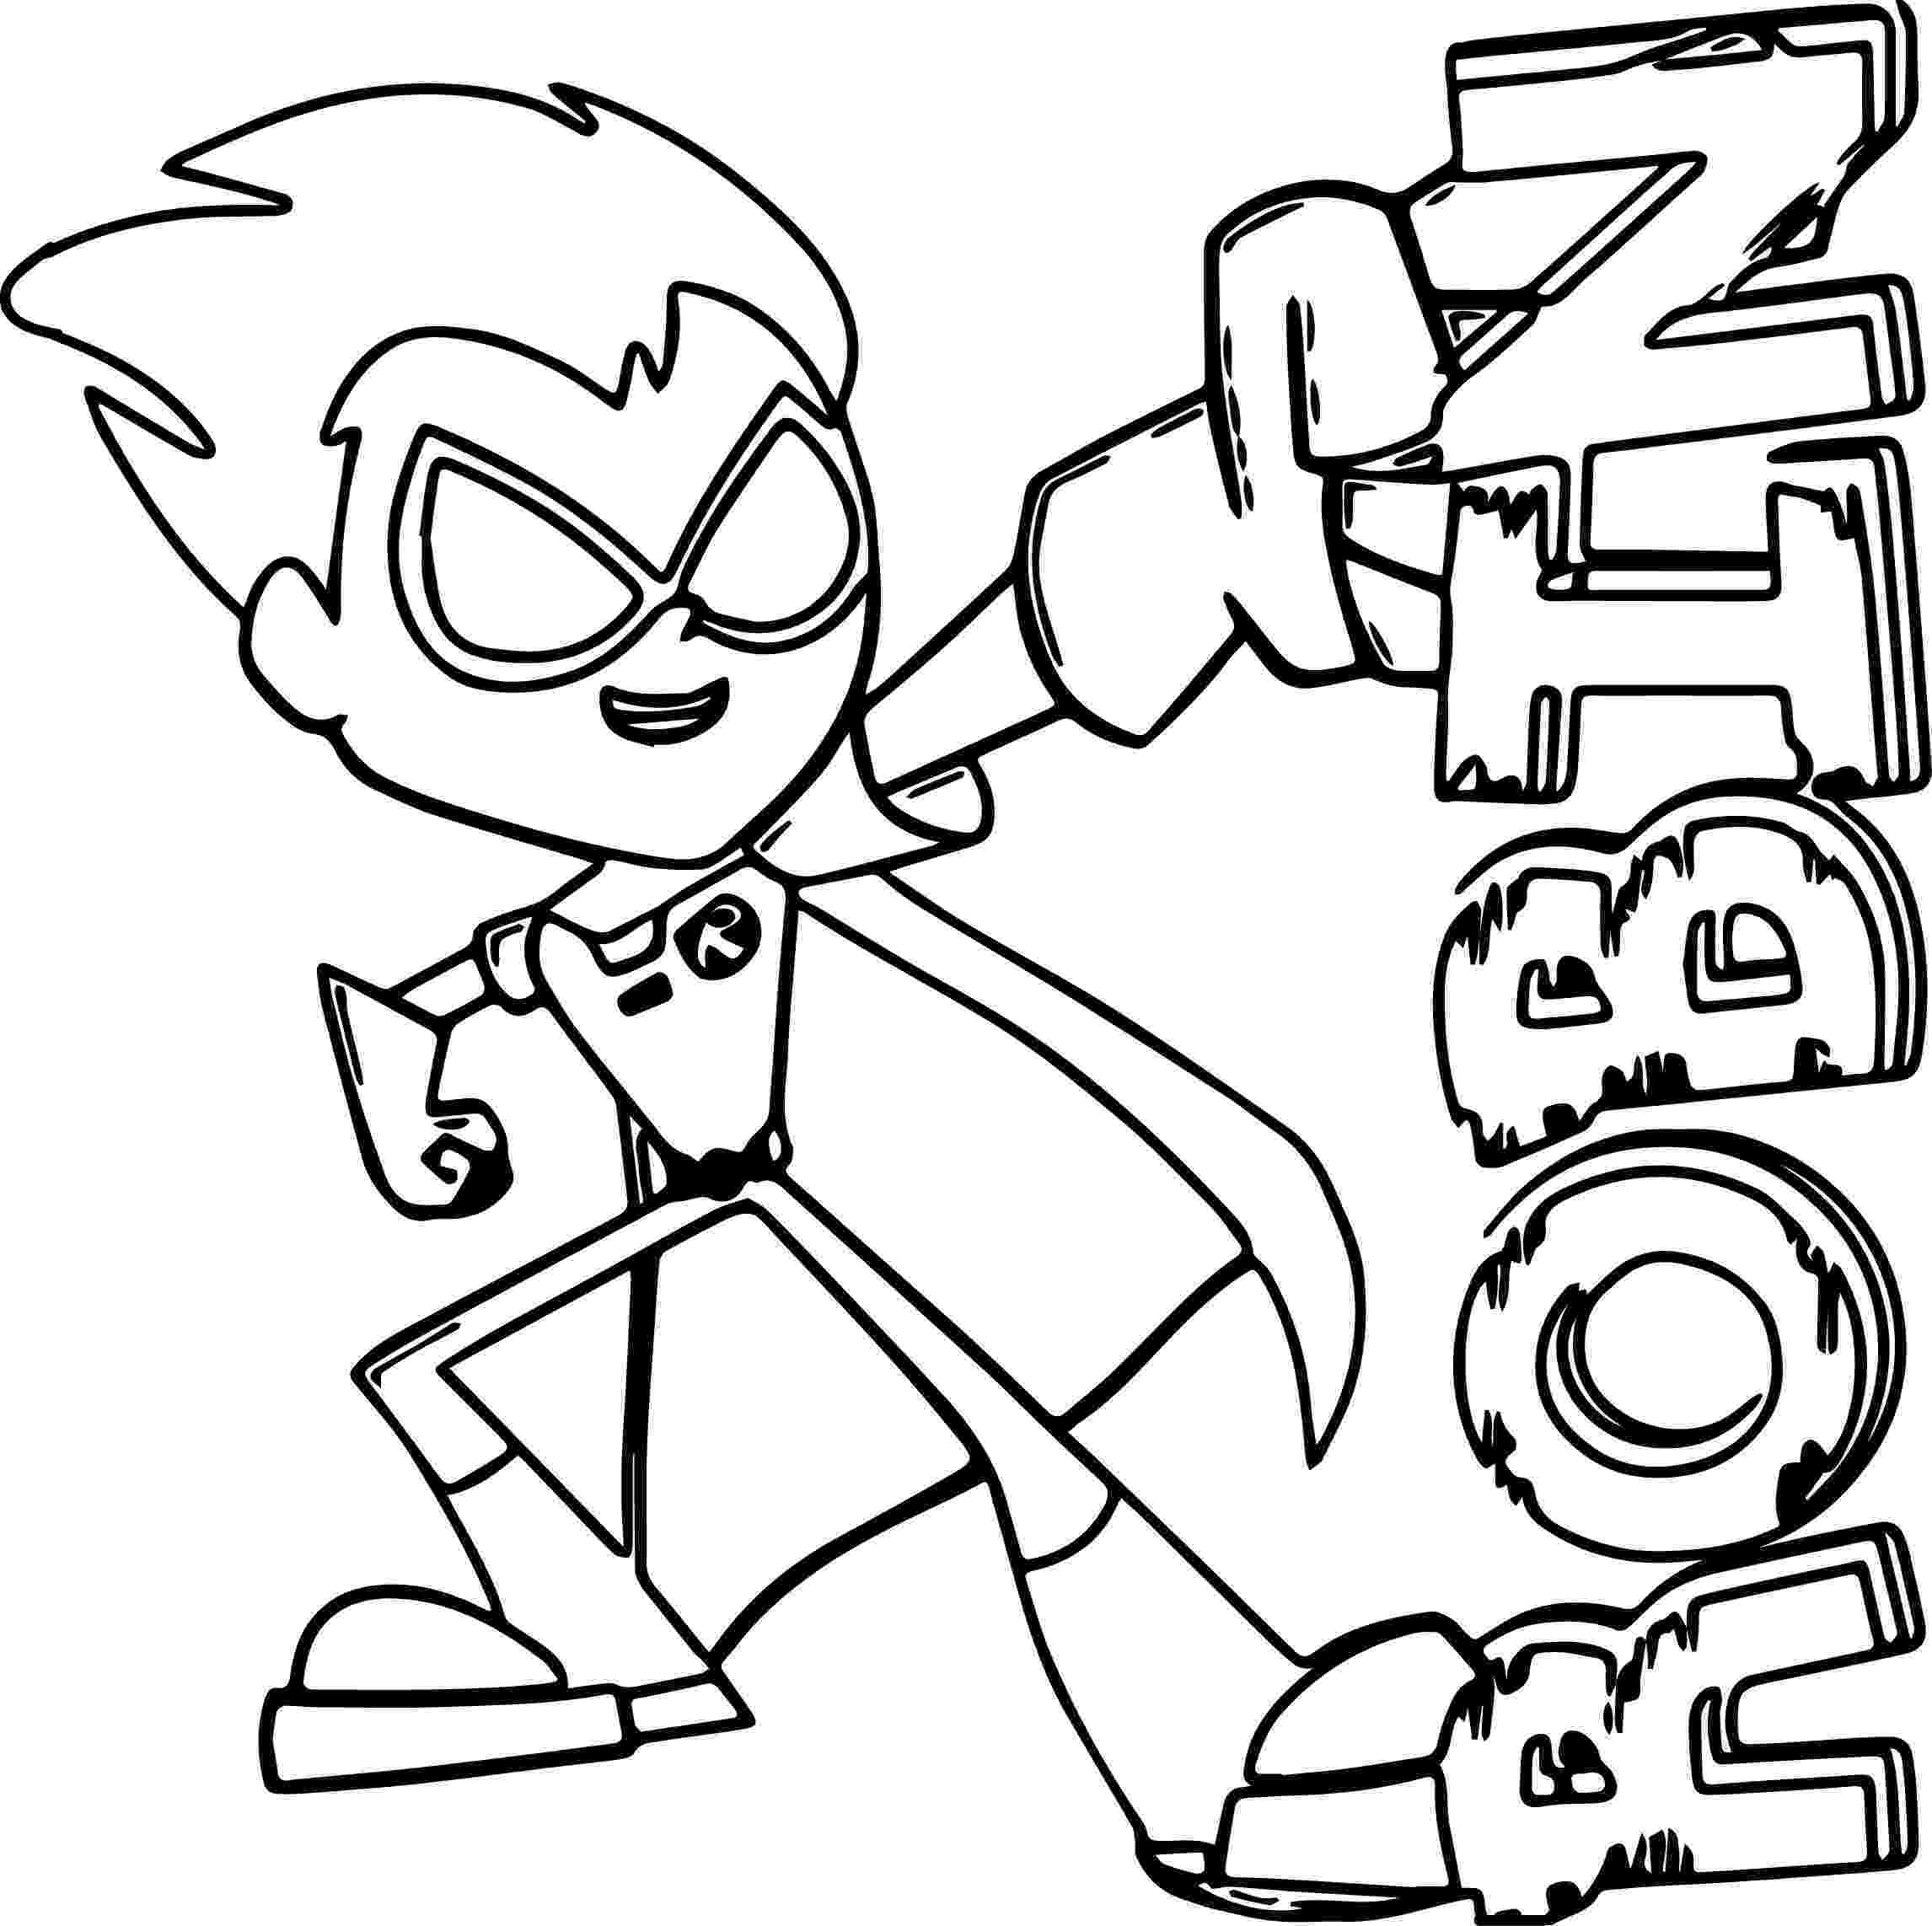 teen boy coloring pages boymanga teens and adults coloring pages coloring pages teen boy